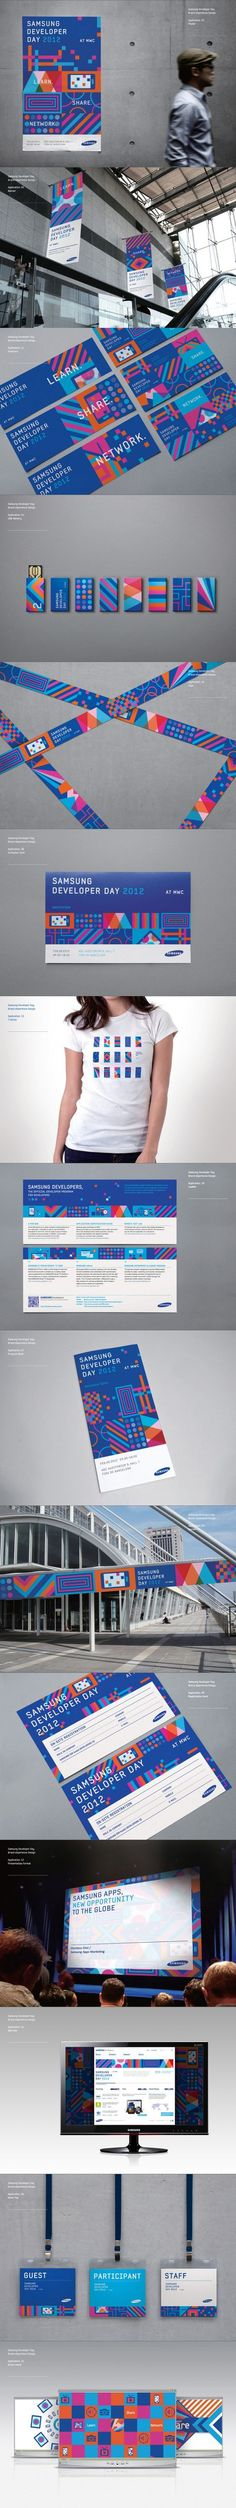 Samsung Developers Branding on Behance | Fivestar Branding – Design and Branding Agency & Inspiration Gallery: | Twitter, Instagram & Pinterest: @TrustVital